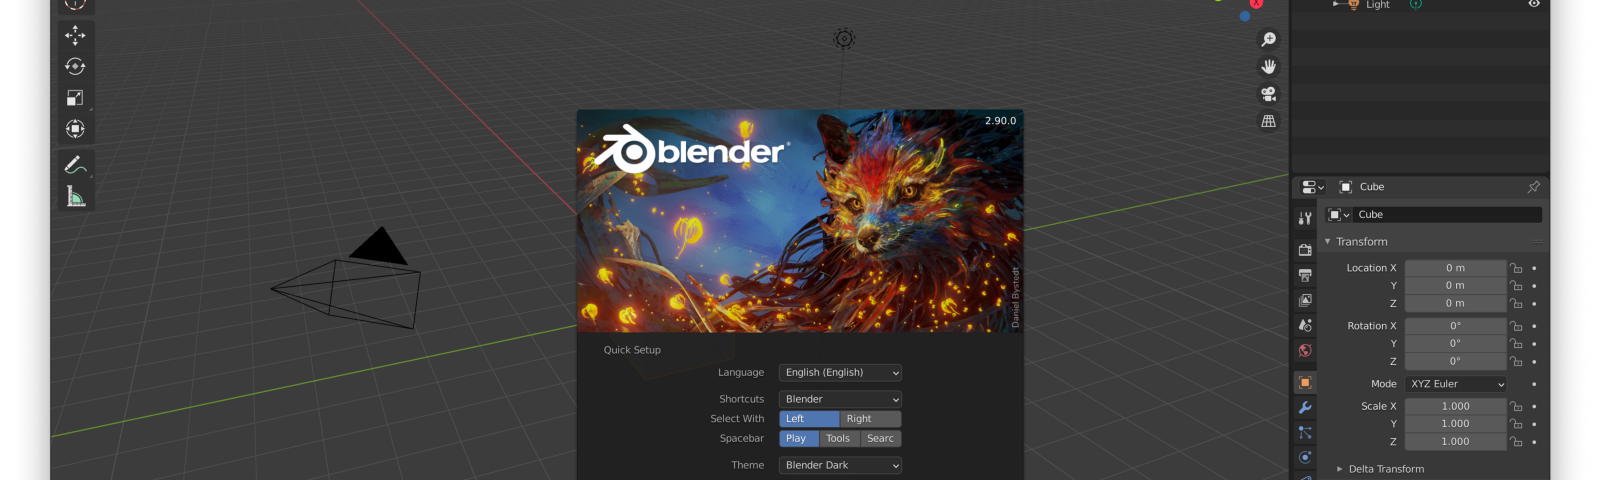 A screenshot of the startup screen of a newly installed Blender programme version 2.90.0